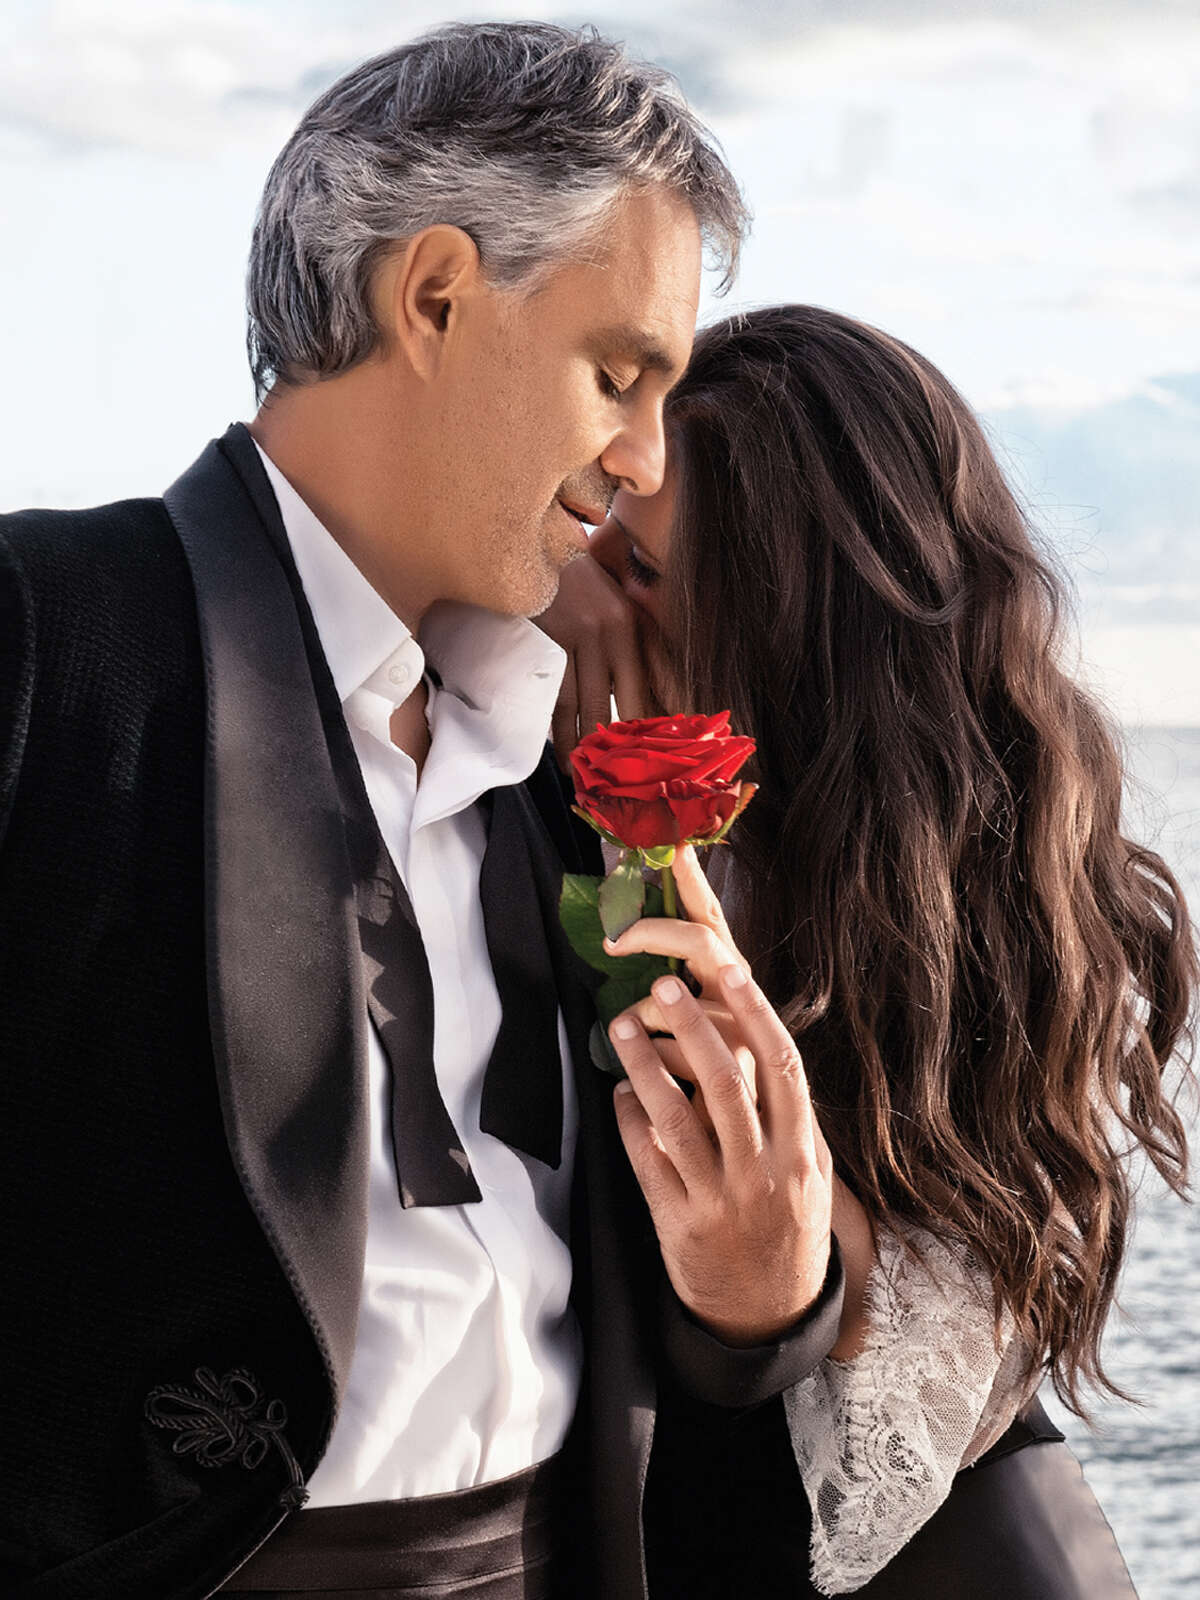 Andrea Bocelli will perform June 13 at the Times Union Center